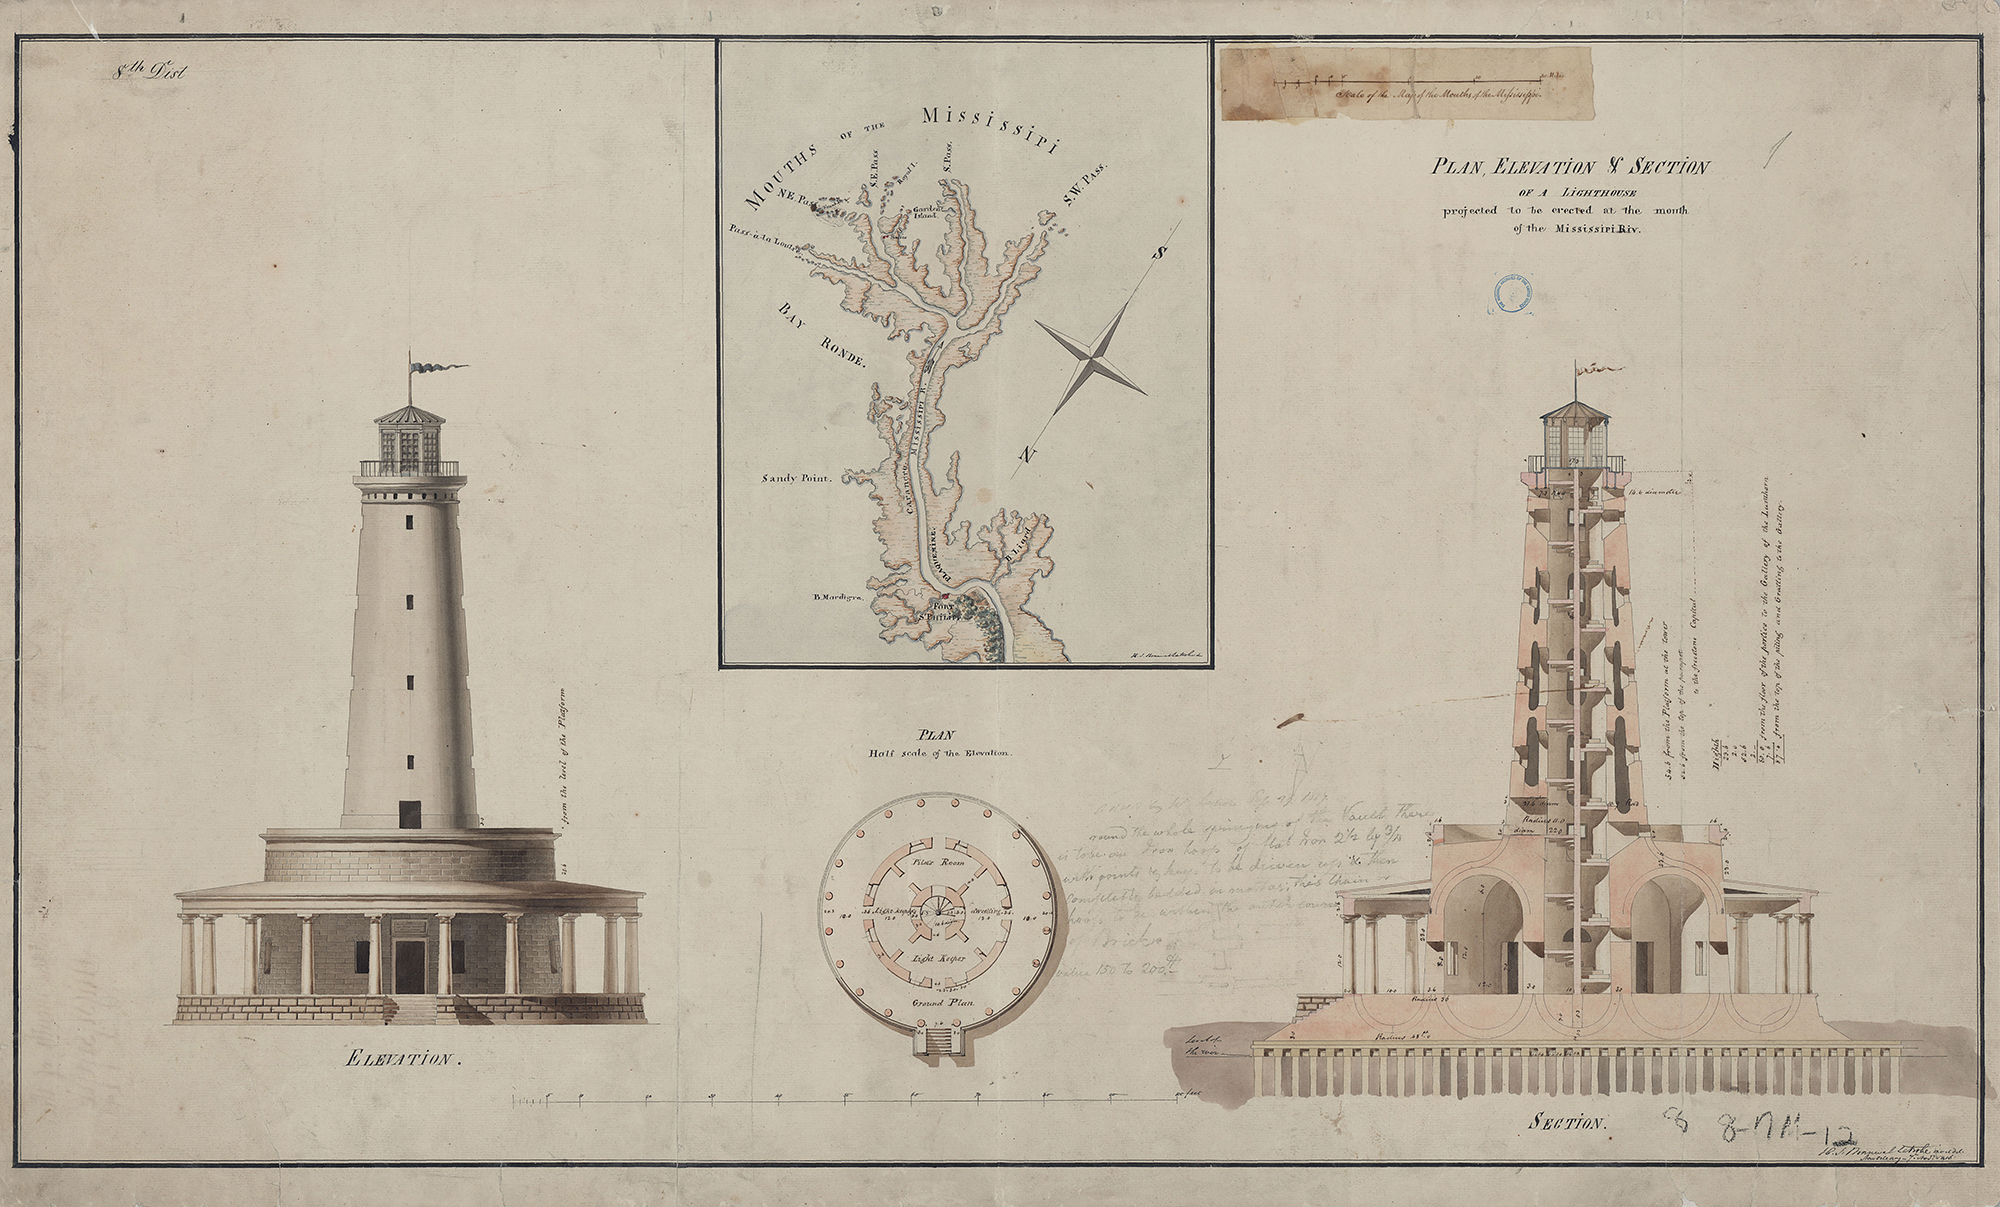 Figure 9: Frank's Island Lighthouse, New Orleans coast. Design: Benjamin Latrobe, 1816. A cross-section of the lighthouse appears along with the exterior.